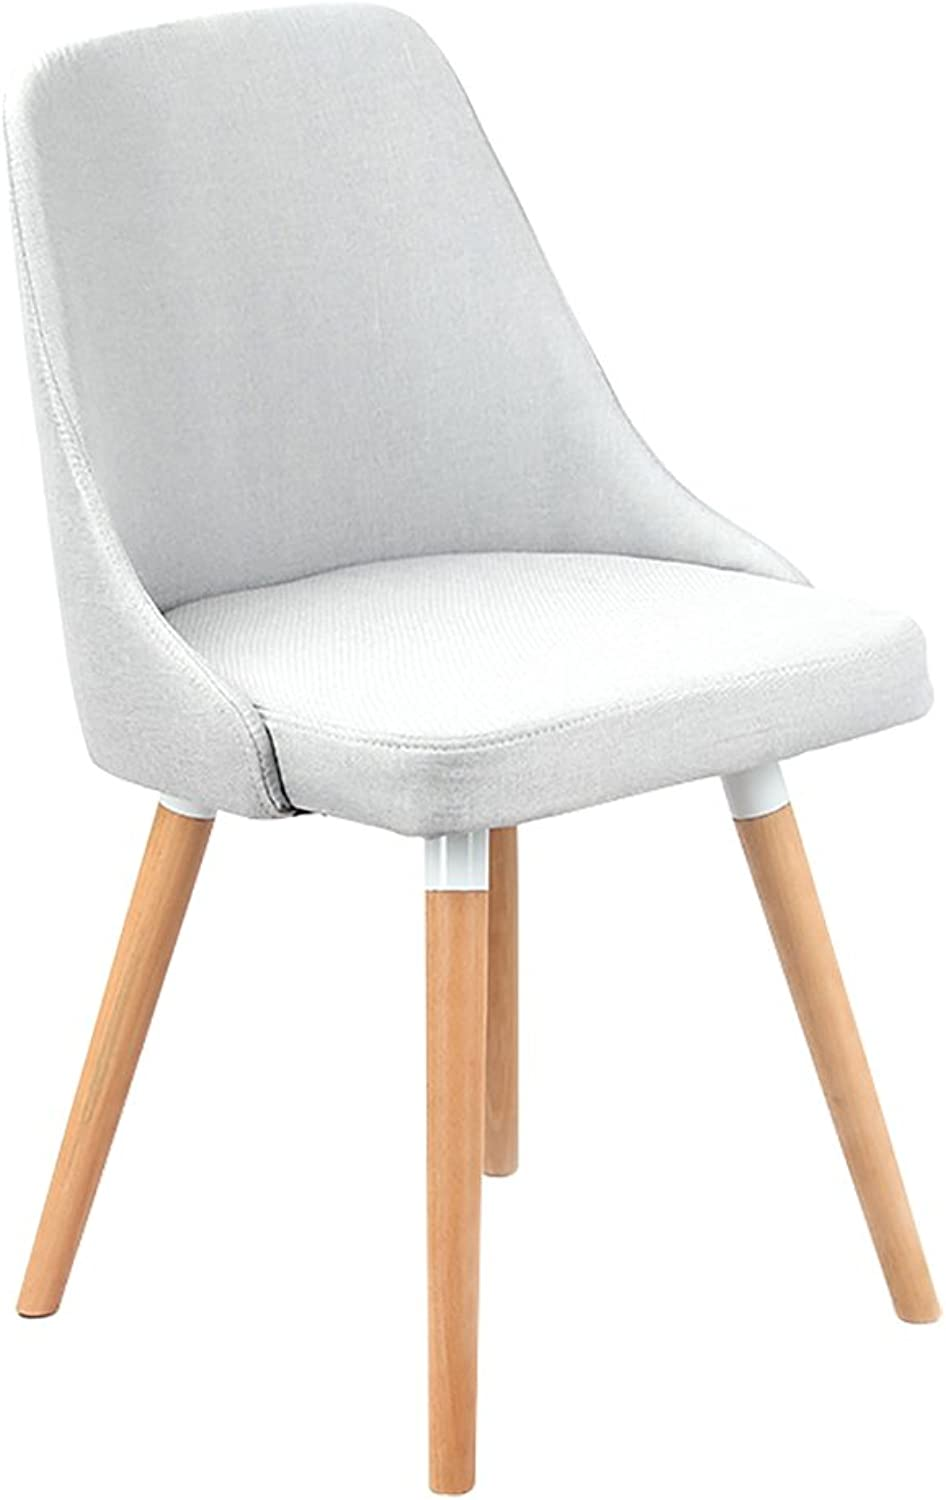 ALUS- Solid Wood Backrest Chair,Nordic Creative Backrest Solid Wood Legs Chairs with Cushioned Pad Contemporary Designer for Office Lounge Dining Kitchen (color   Light Grey, Size   42cmX42cmX45cm)